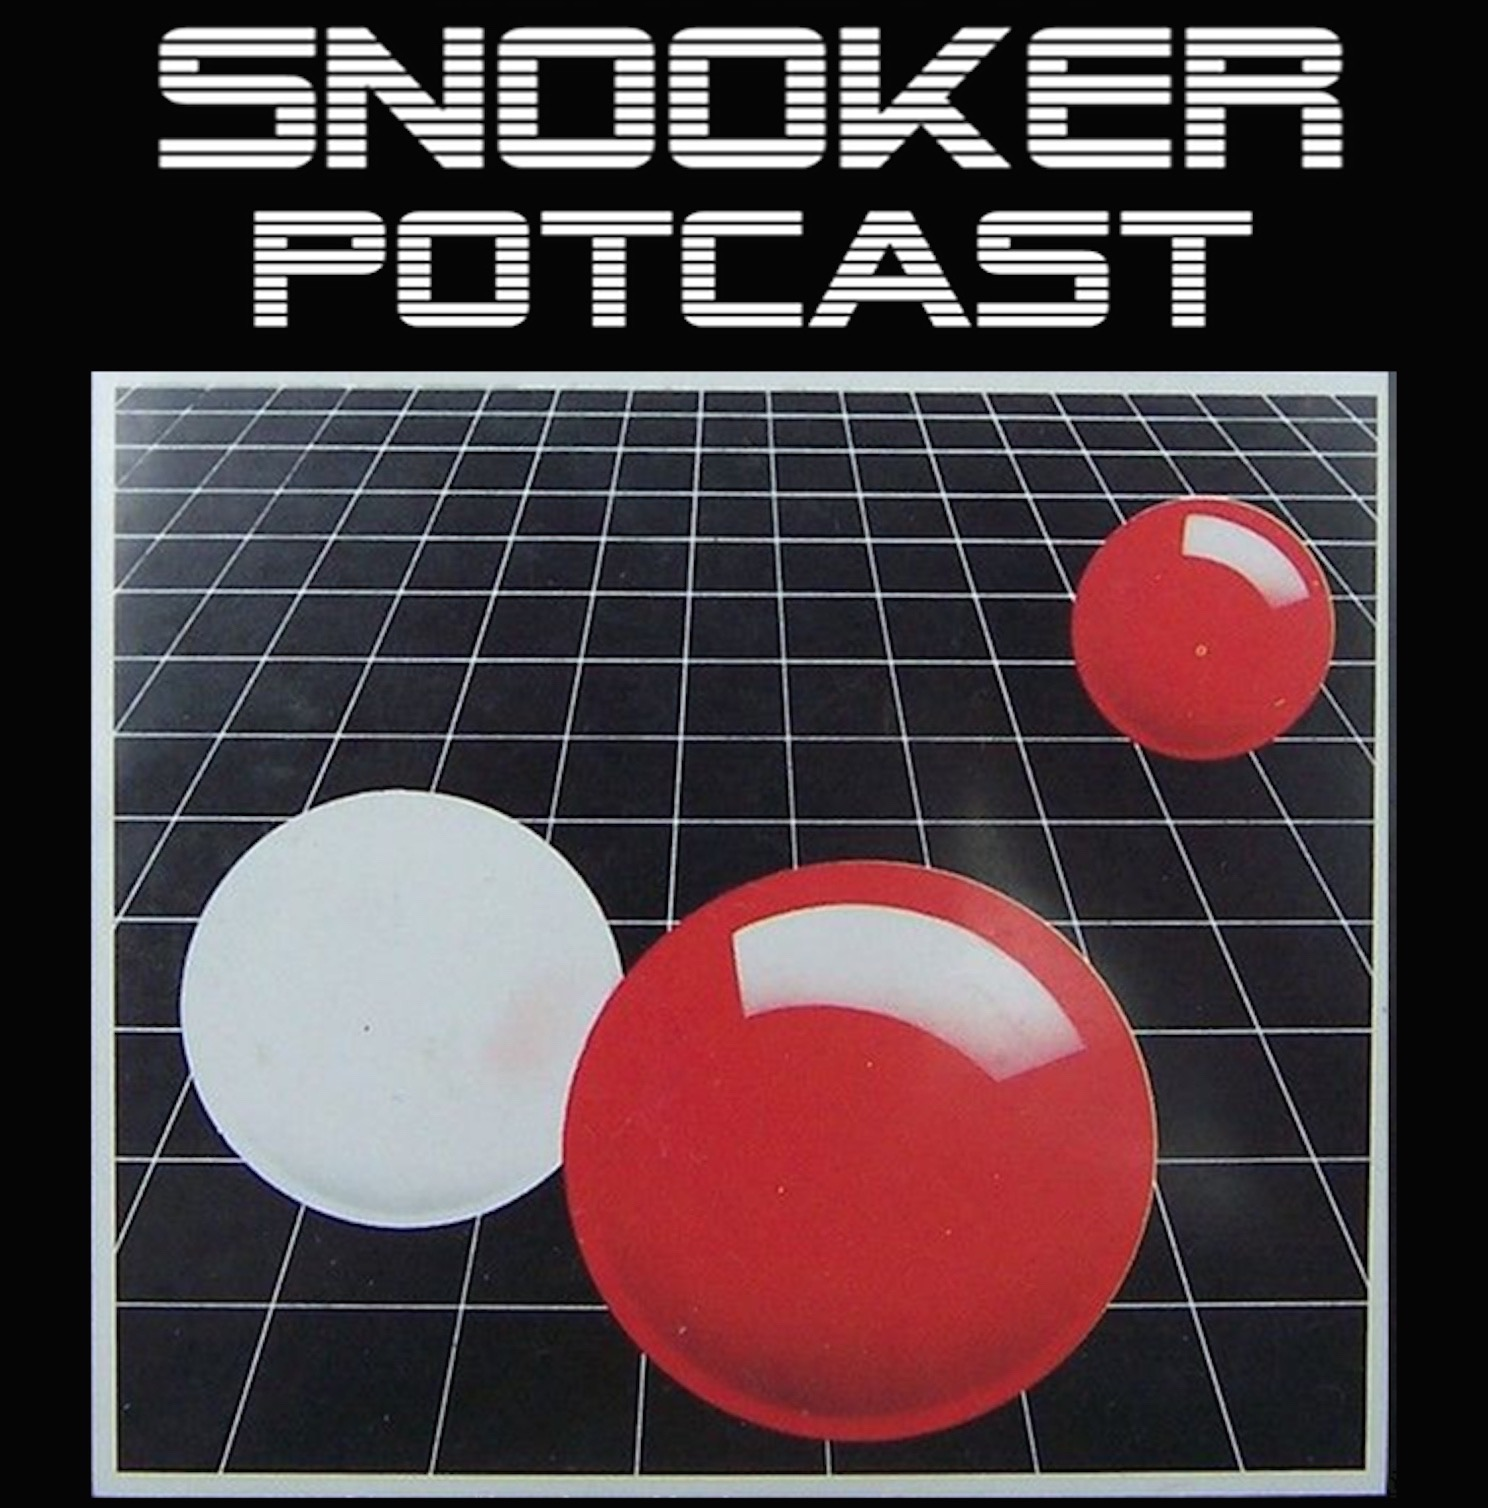 Snooker Potcast Episode 17 - Earl Strickland / Luca Luggage / Robbocop